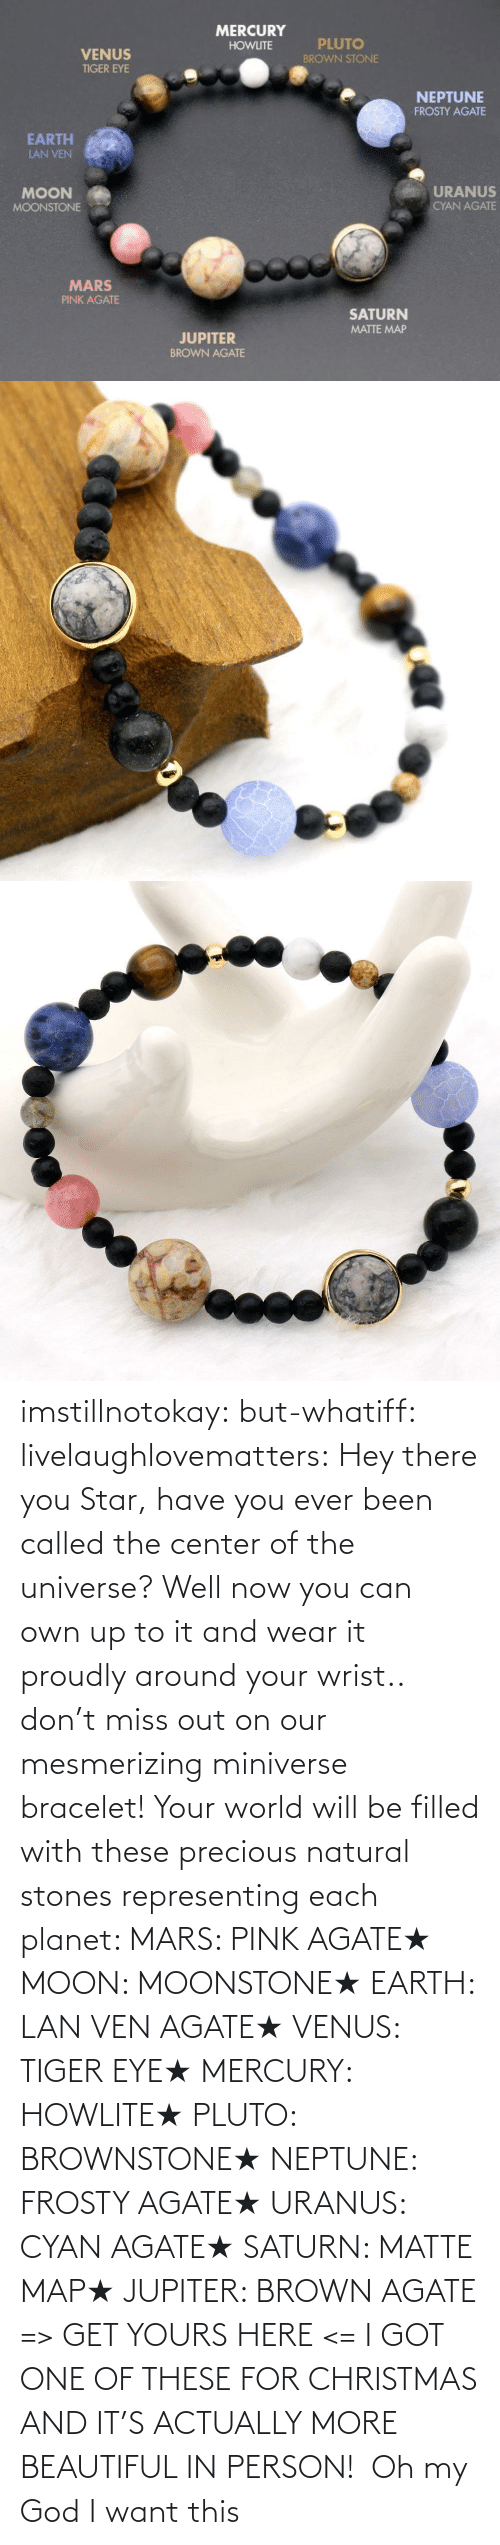 Got One: imstillnotokay: but-whatiff:  livelaughlovematters:  Hey there you Star, have you ever been called the center of the universe? Well now you can own up to it and wear it proudly around your wrist.. don't miss out on our mesmerizing miniverse bracelet! Your world will be filled with these precious natural stones representing each planet:  MARS: PINK AGATE★ MOON: MOONSTONE★ EARTH: LAN VEN AGATE★ VENUS: TIGER EYE★ MERCURY: HOWLITE★ PLUTO: BROWNSTONE★ NEPTUNE: FROSTY AGATE★ URANUS: CYAN AGATE★ SATURN: MATTE MAP★ JUPITER: BROWN AGATE => GET YOURS HERE <=  I GOT ONE OF THESE FOR CHRISTMAS AND IT'S ACTUALLY MORE BEAUTIFUL IN PERSON!     Oh my God I want this